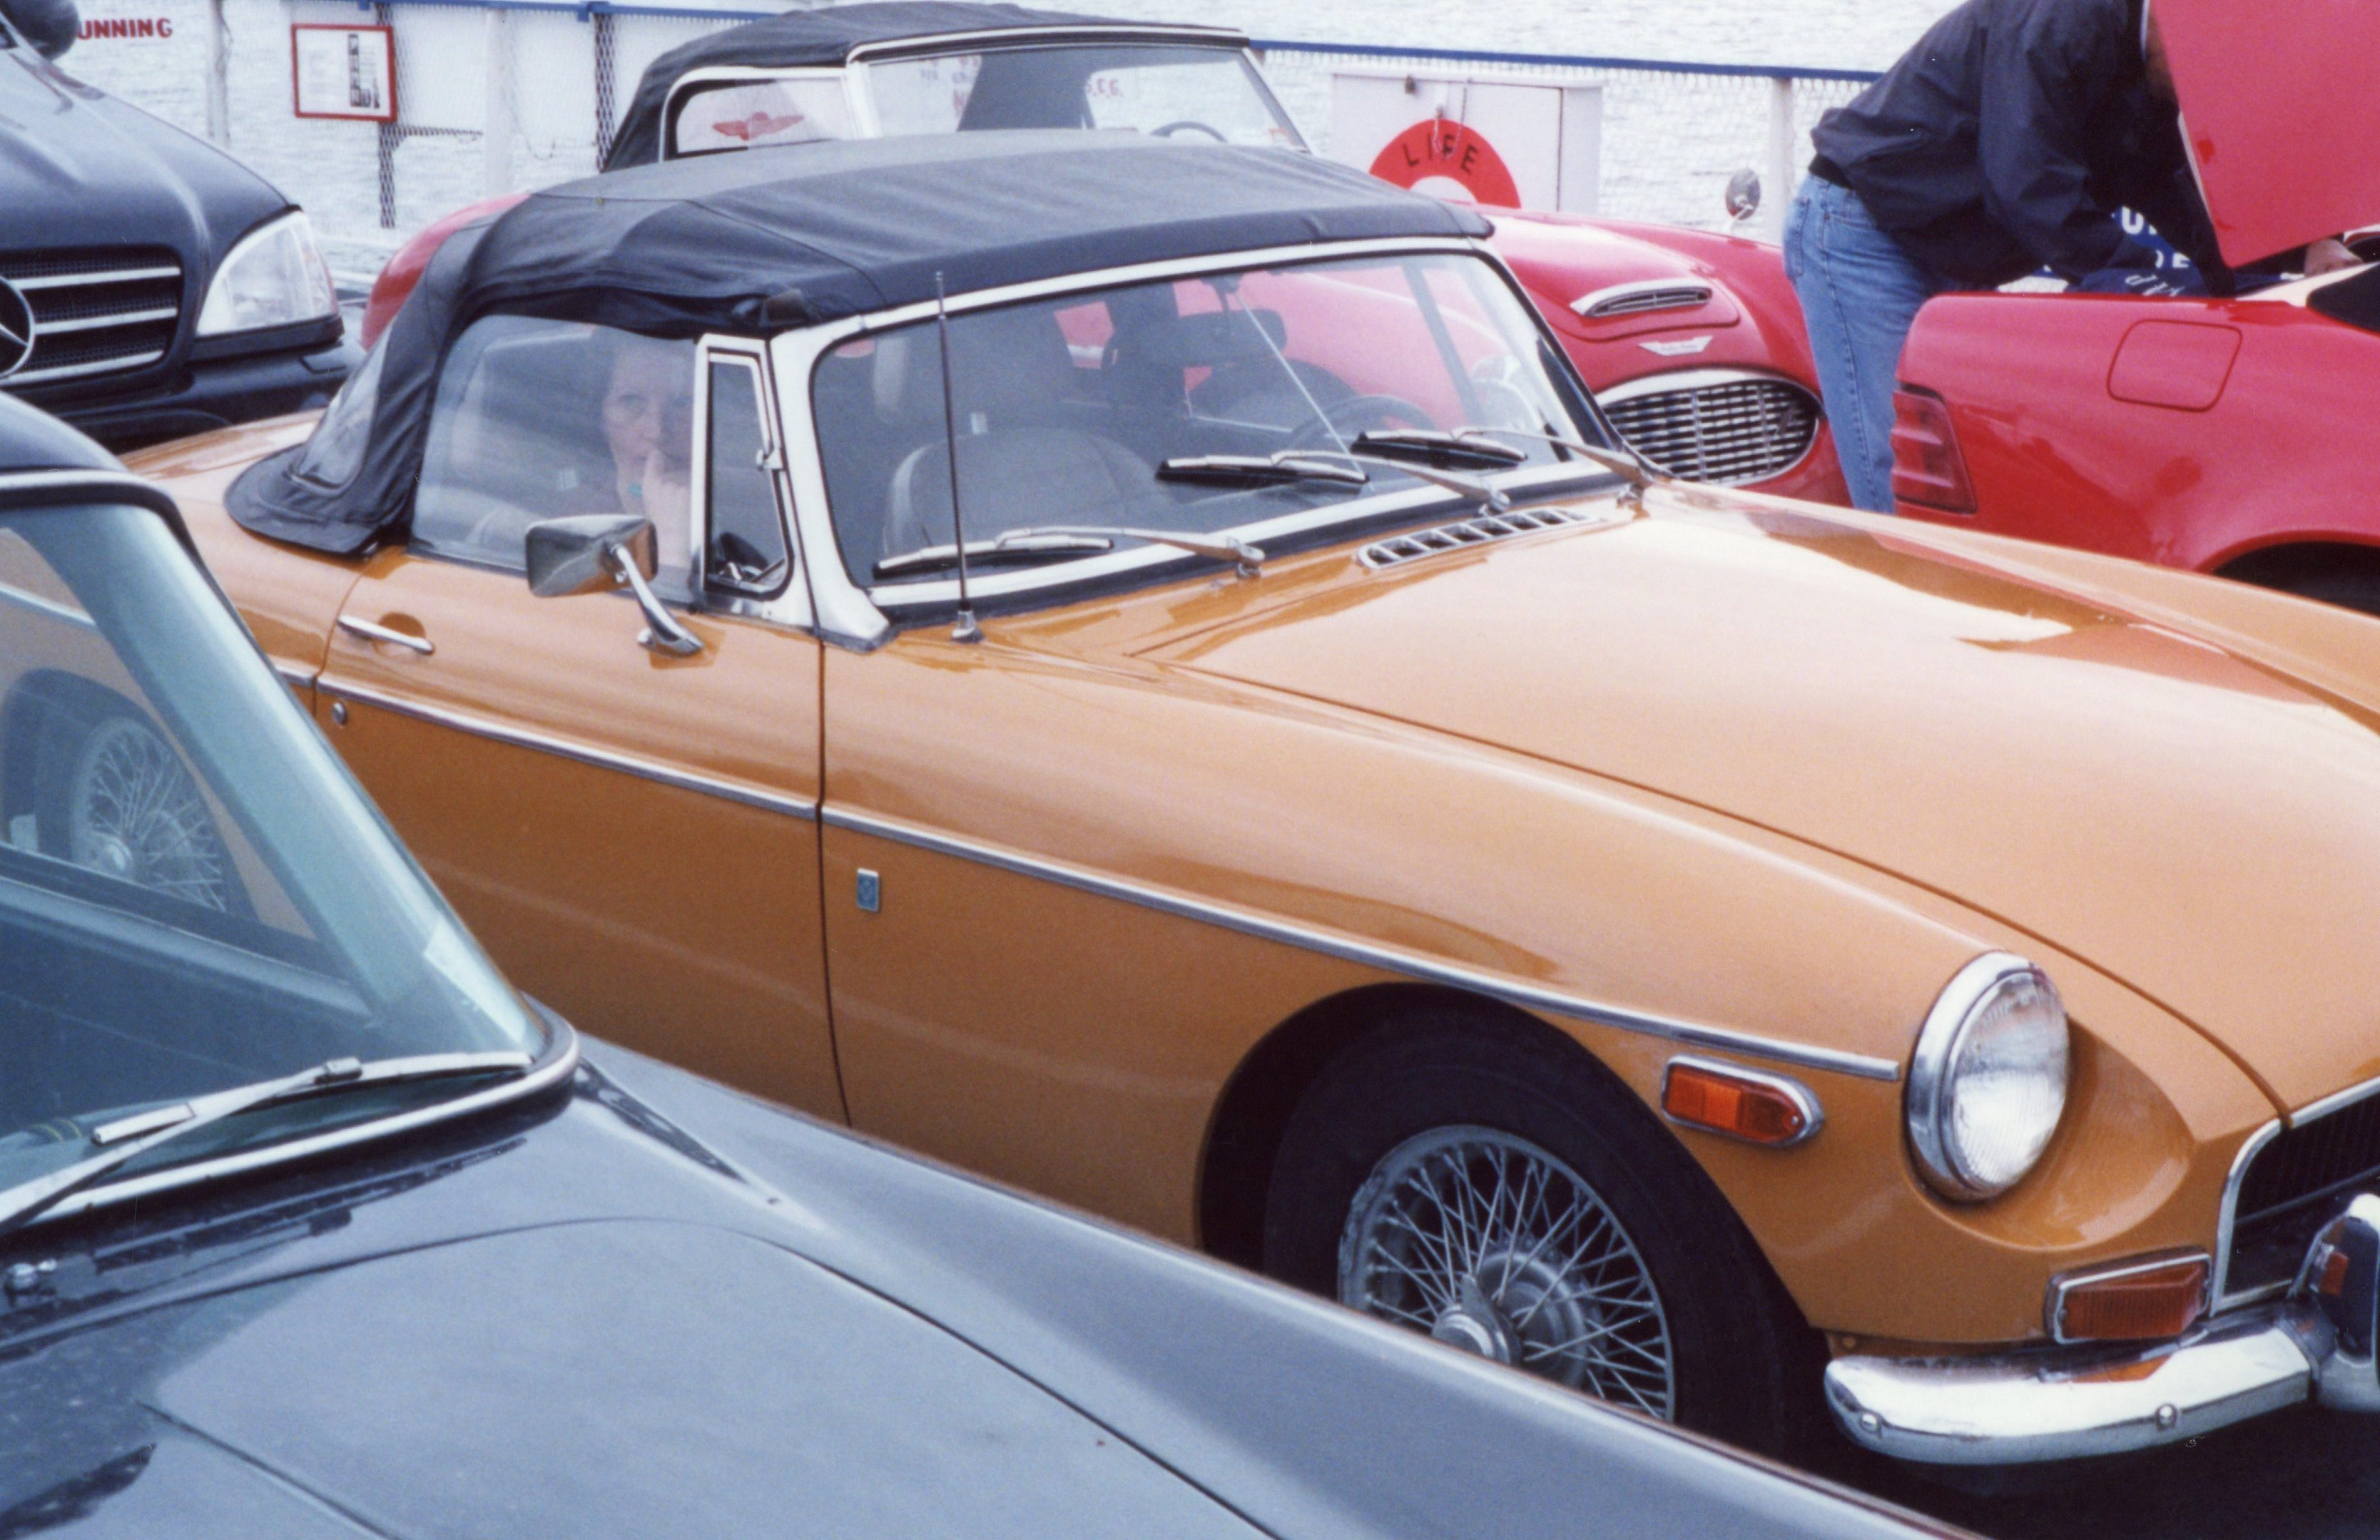 Drizzle required top-up, no quick job in the MG